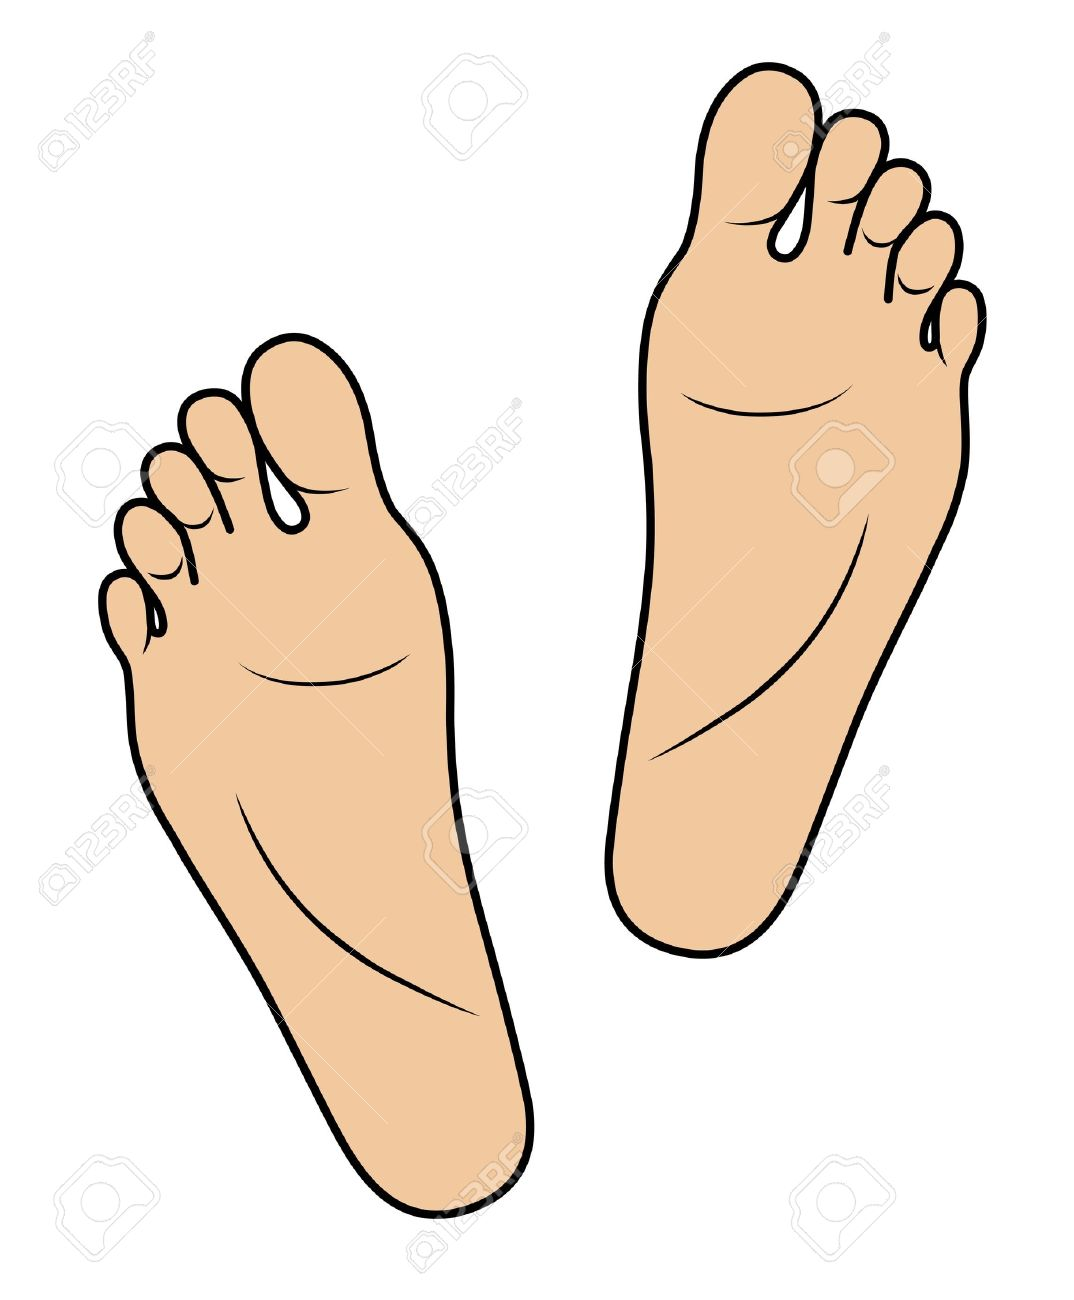 Feet clipart #16, Download drawings